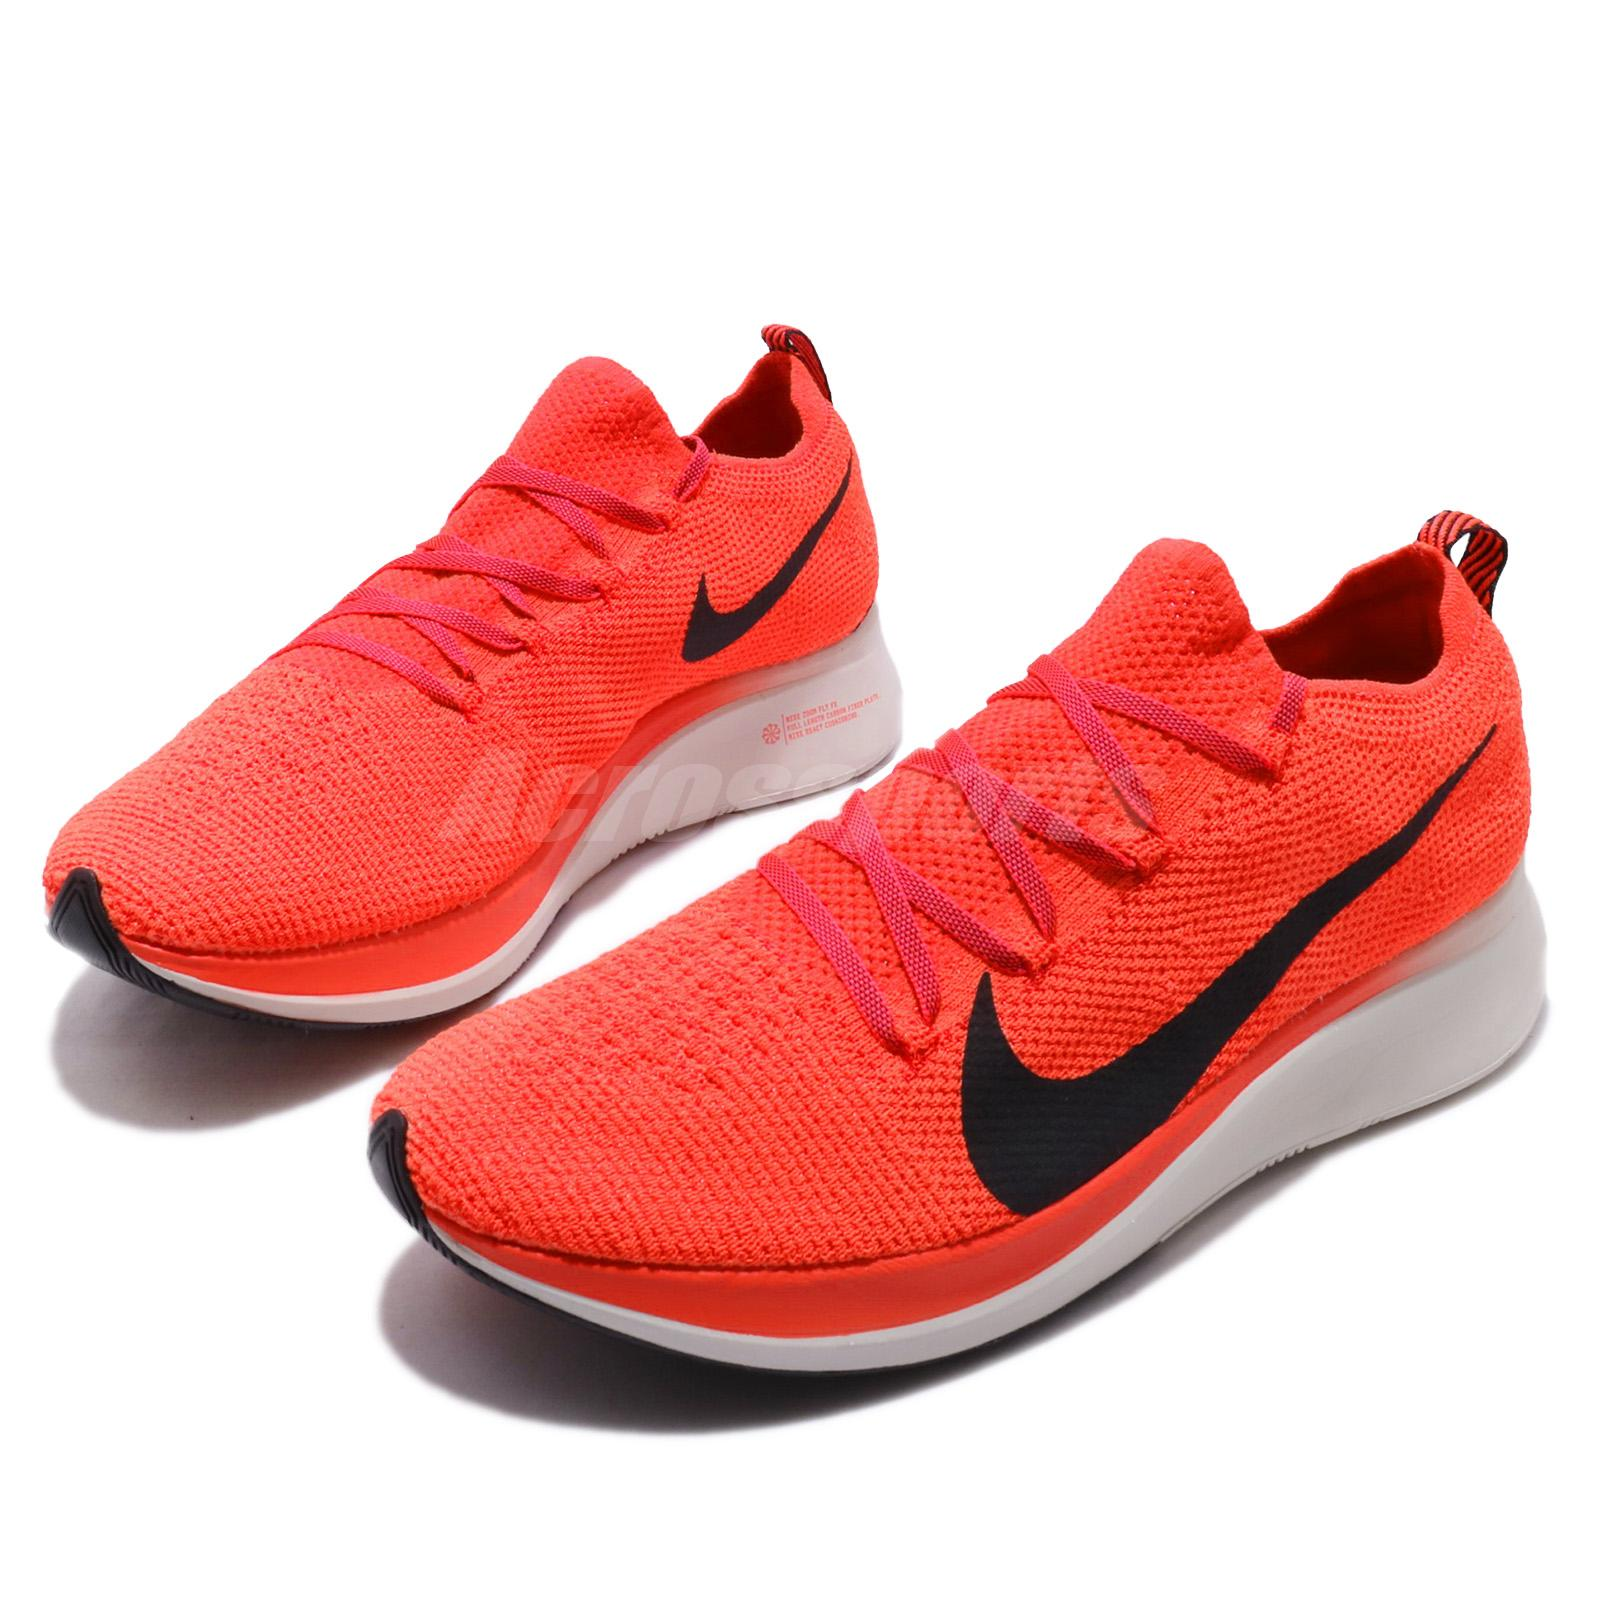 46fdb115aea2 Details about Nike Zoom Fly FK Flyknit Bright Crimson Black Men Running  Shoes AR4561-600